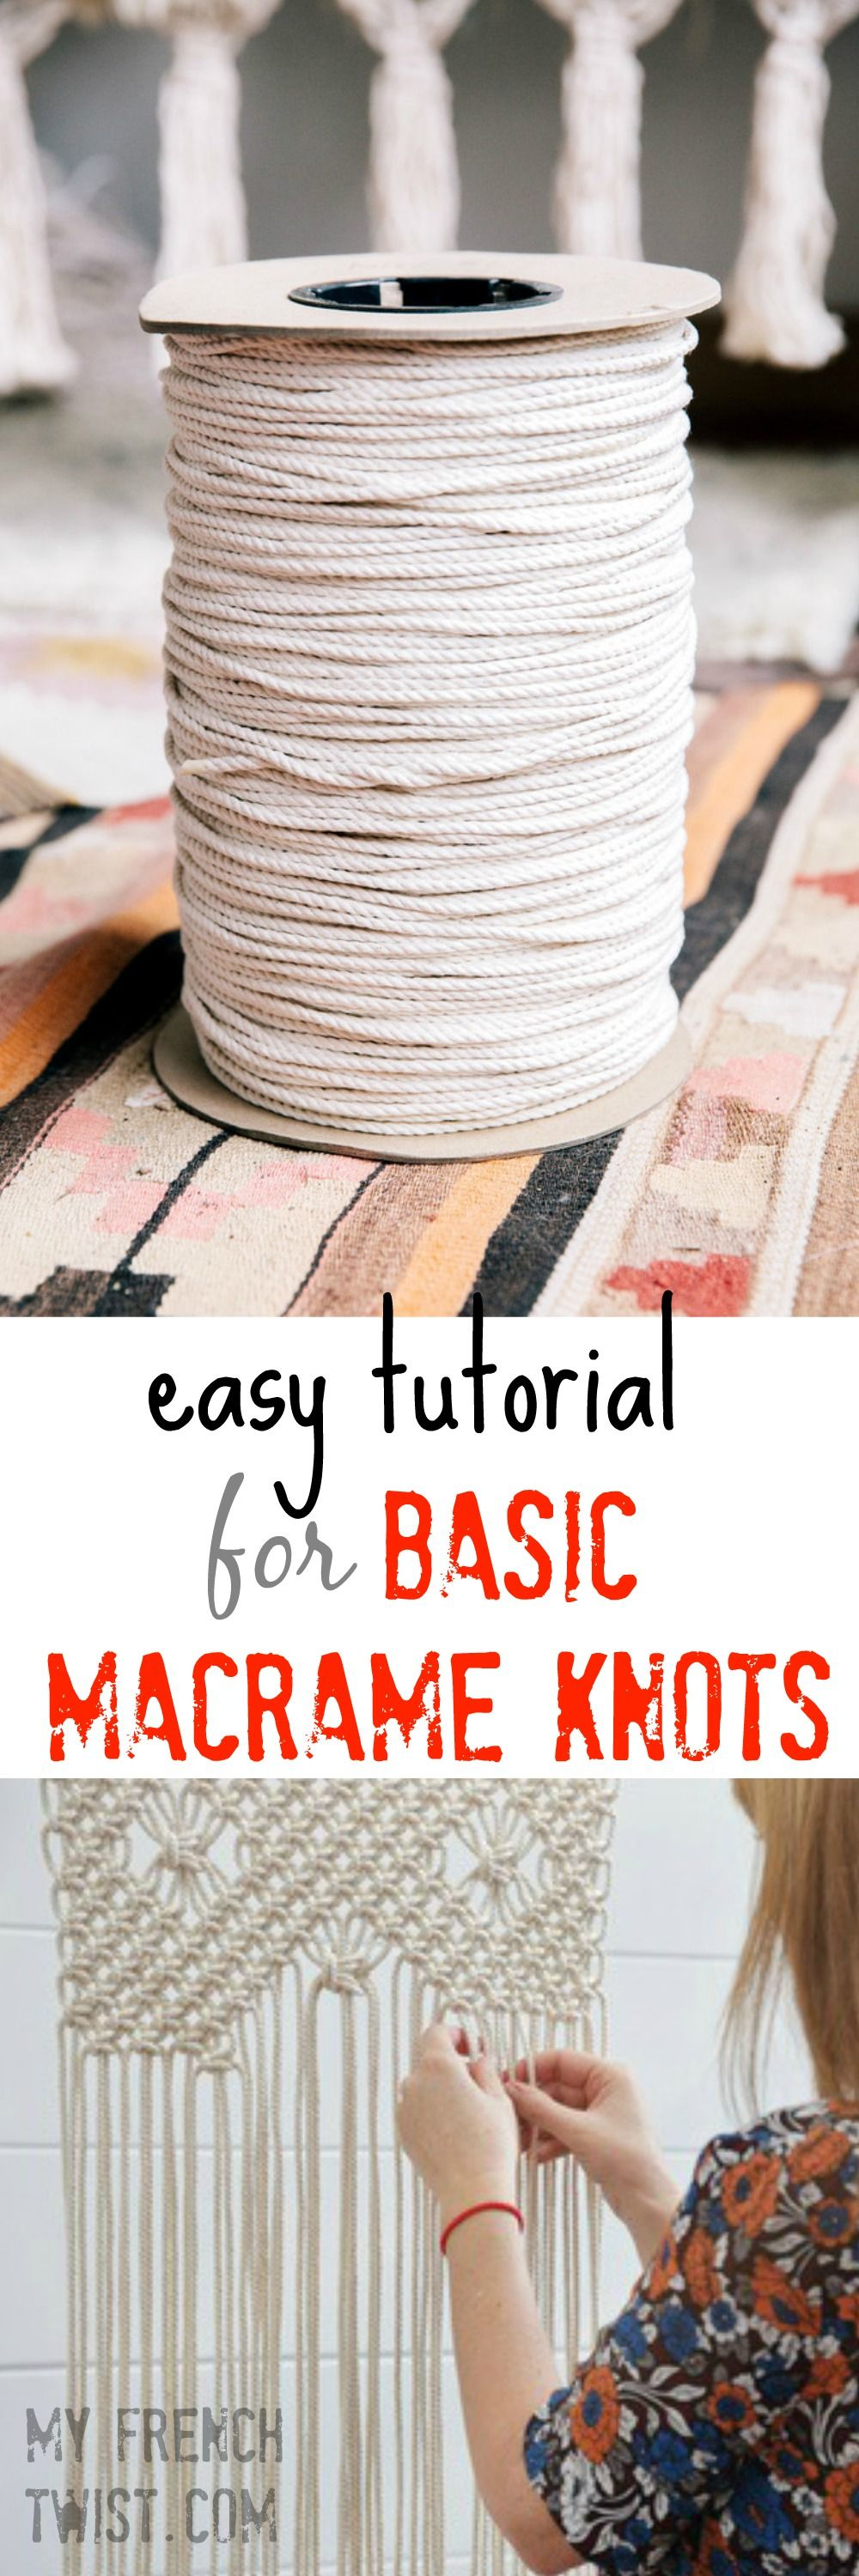 easy tutorial for basic macrame knots der faden diy makrame stricken und h keln pinterest. Black Bedroom Furniture Sets. Home Design Ideas